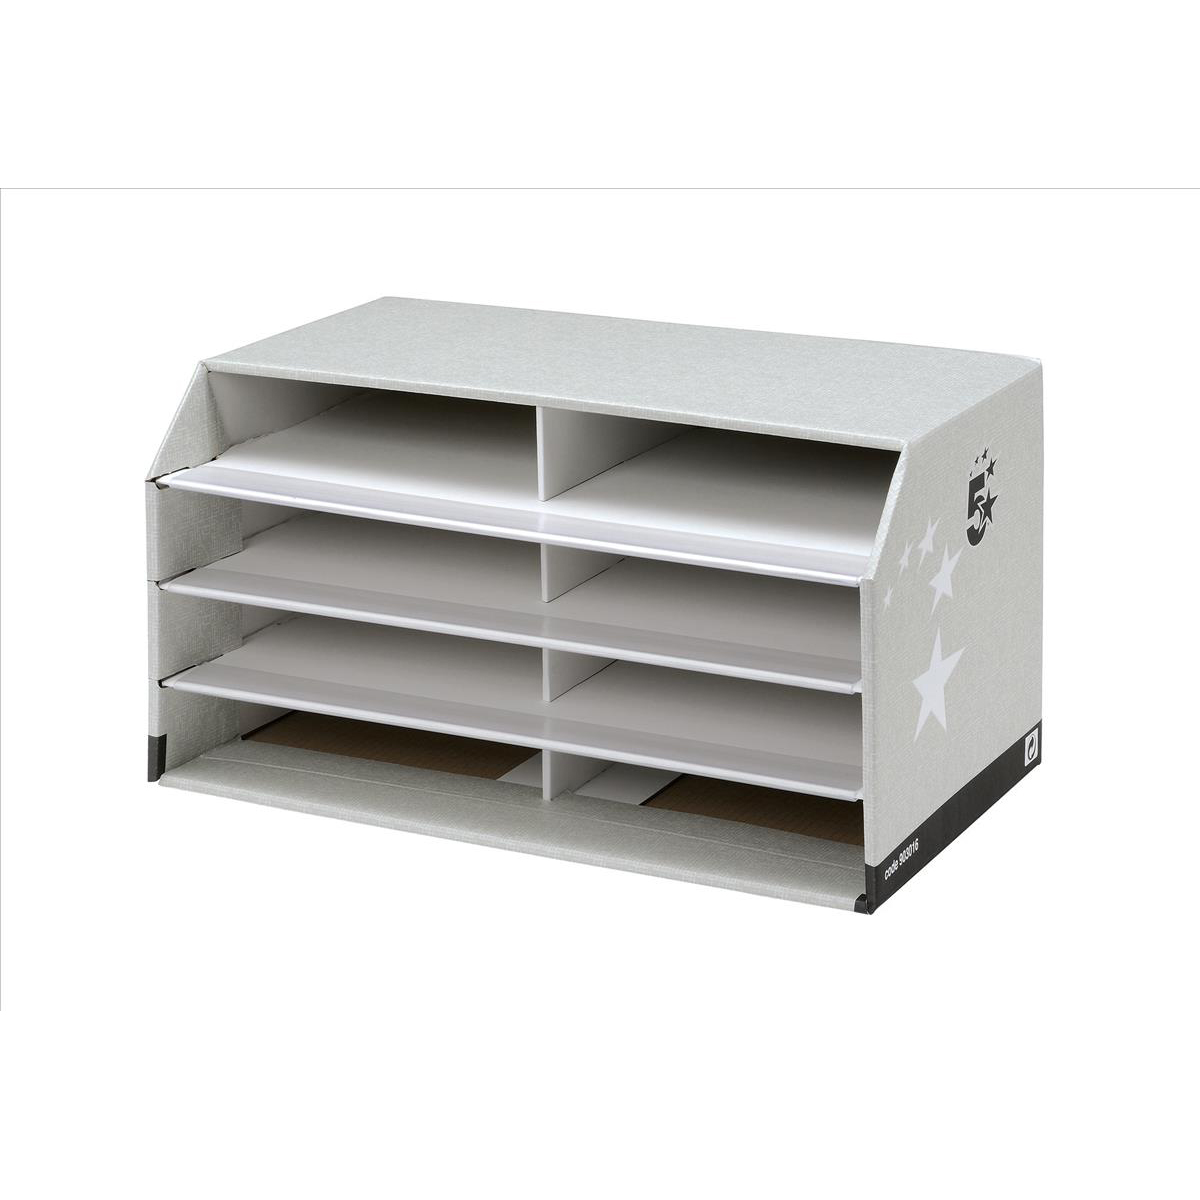 Image for 5 Star Facilities Document Sorter with 8 Compartments Grey